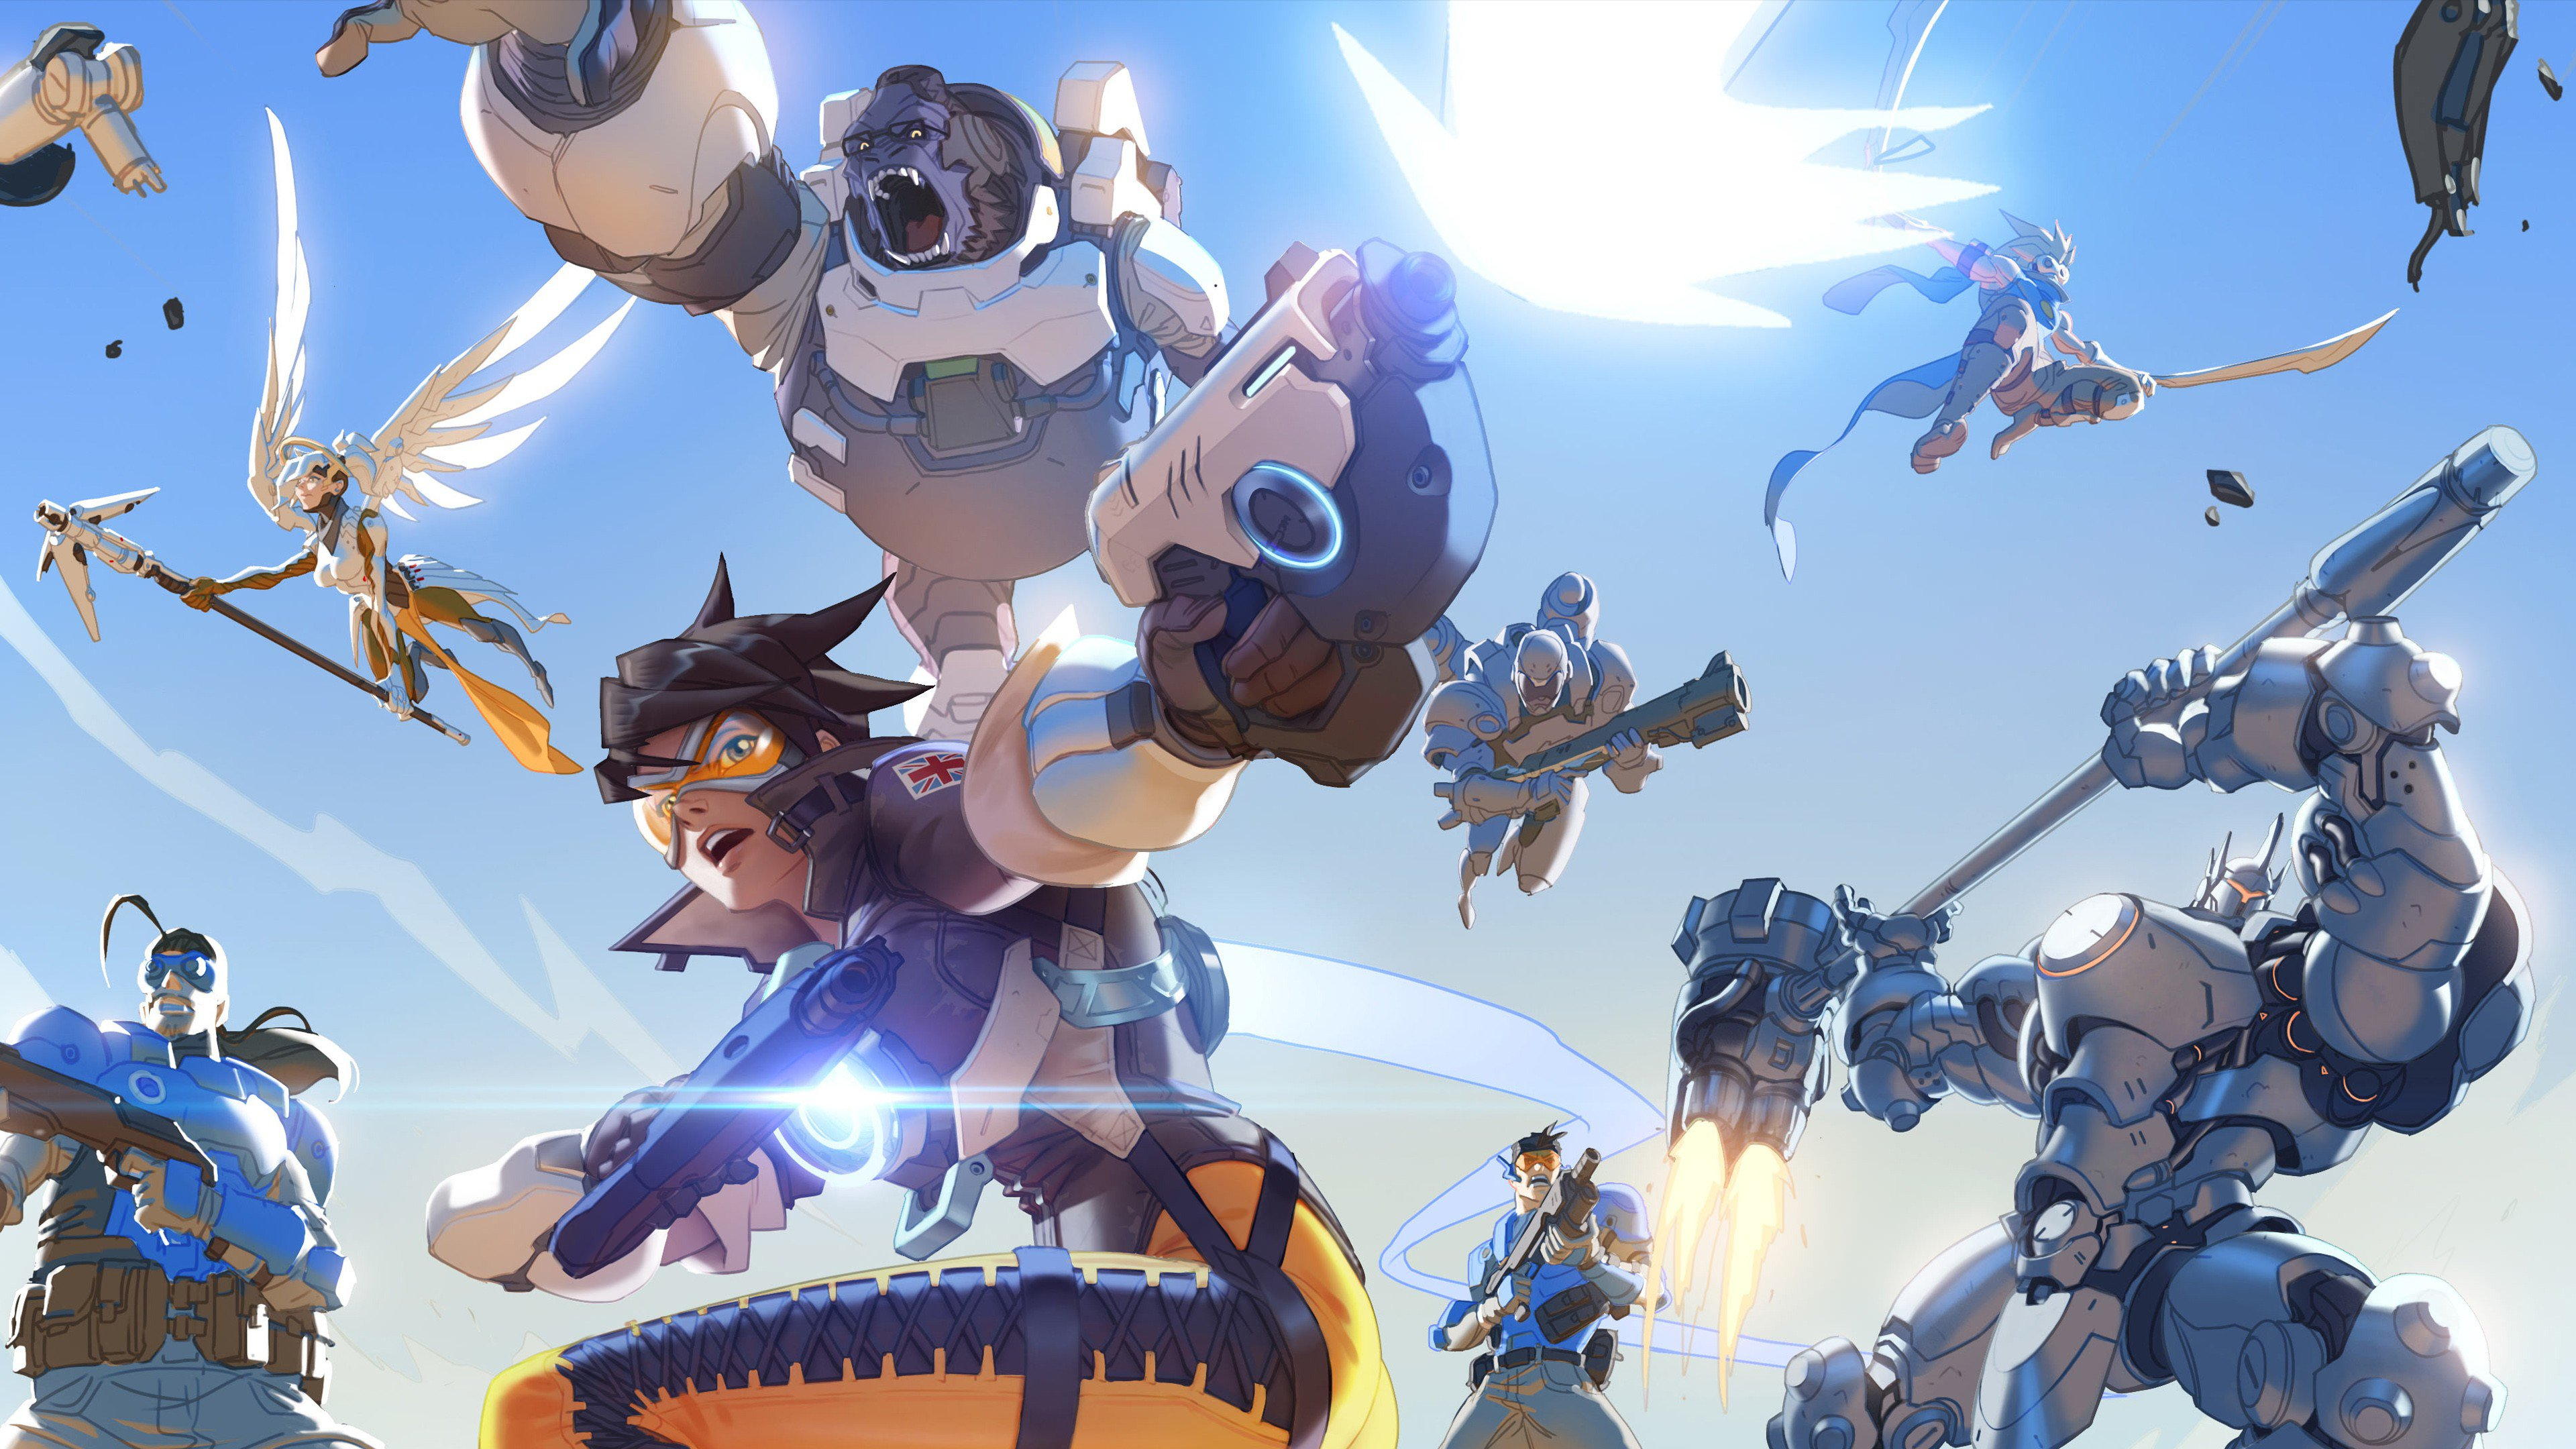 overwatch wallpaper background hd 62854